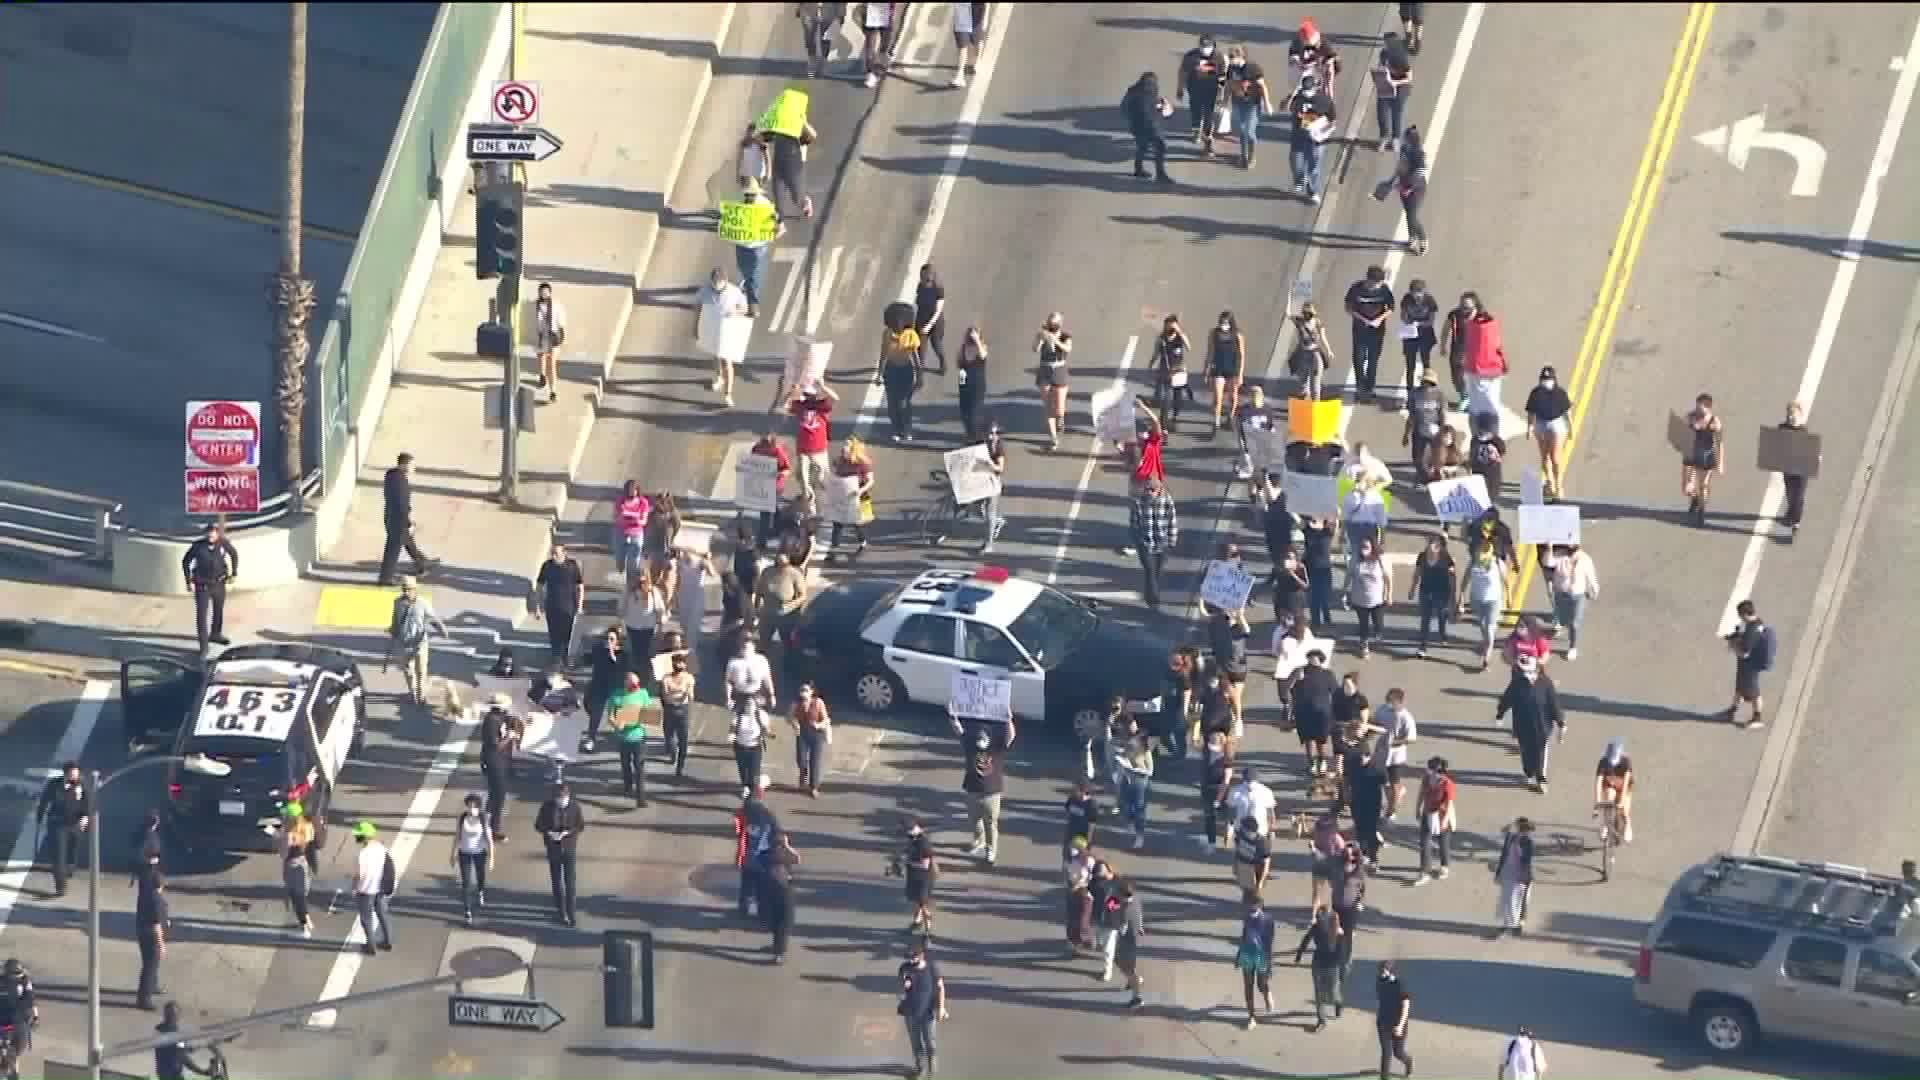 Demonstrators with Black Lives Matter were protesting in Los Angeles on May 27, 2020. (KTLA)